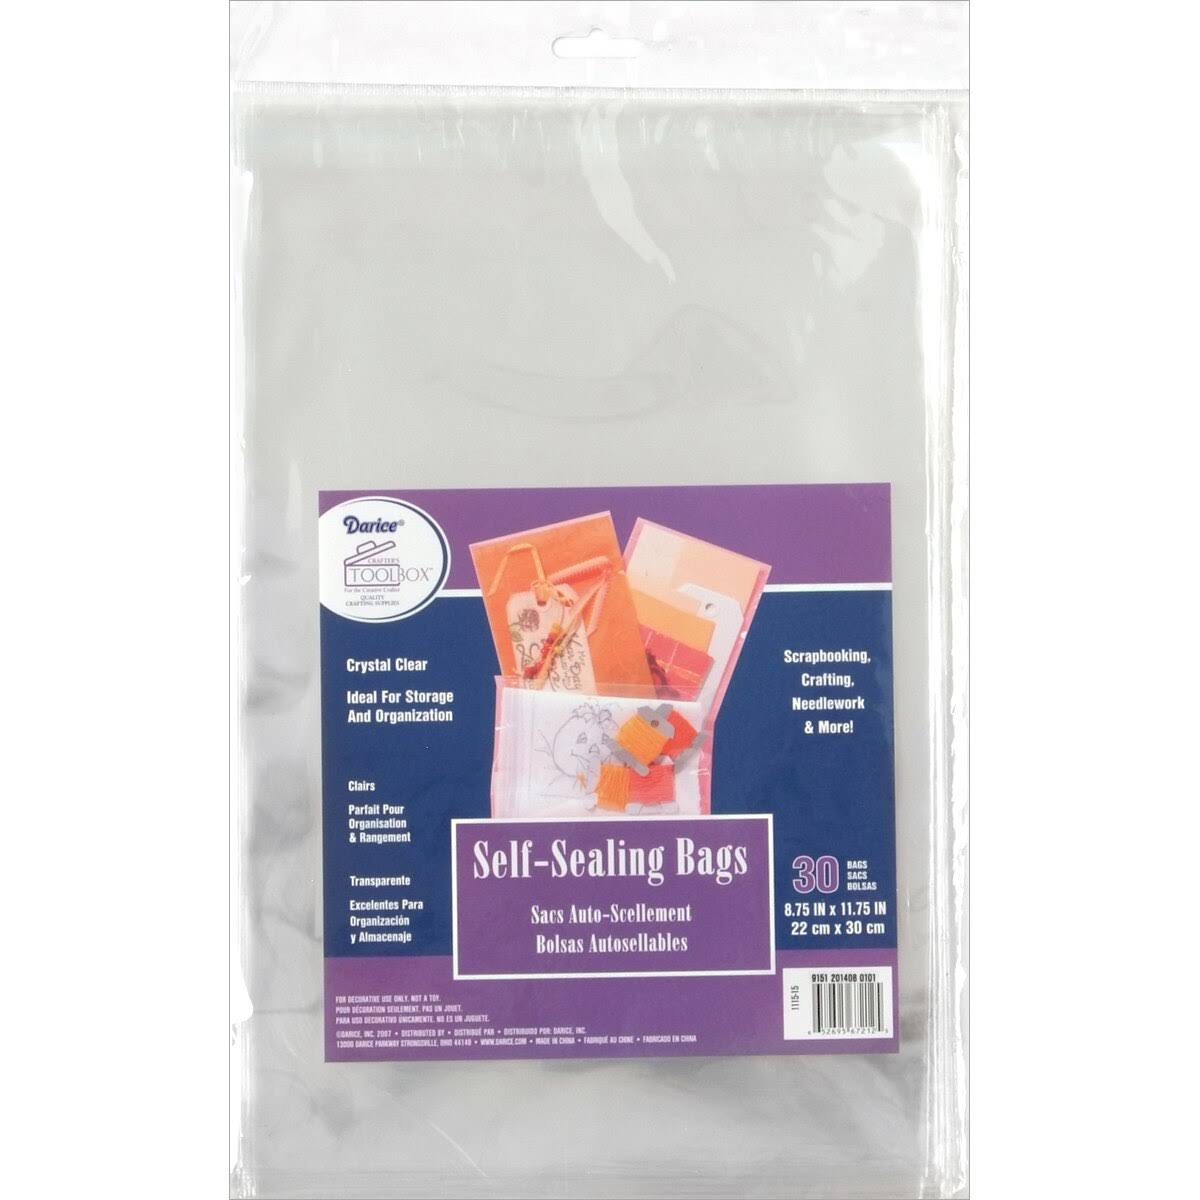 Darice Self-Sealing Storage Bags